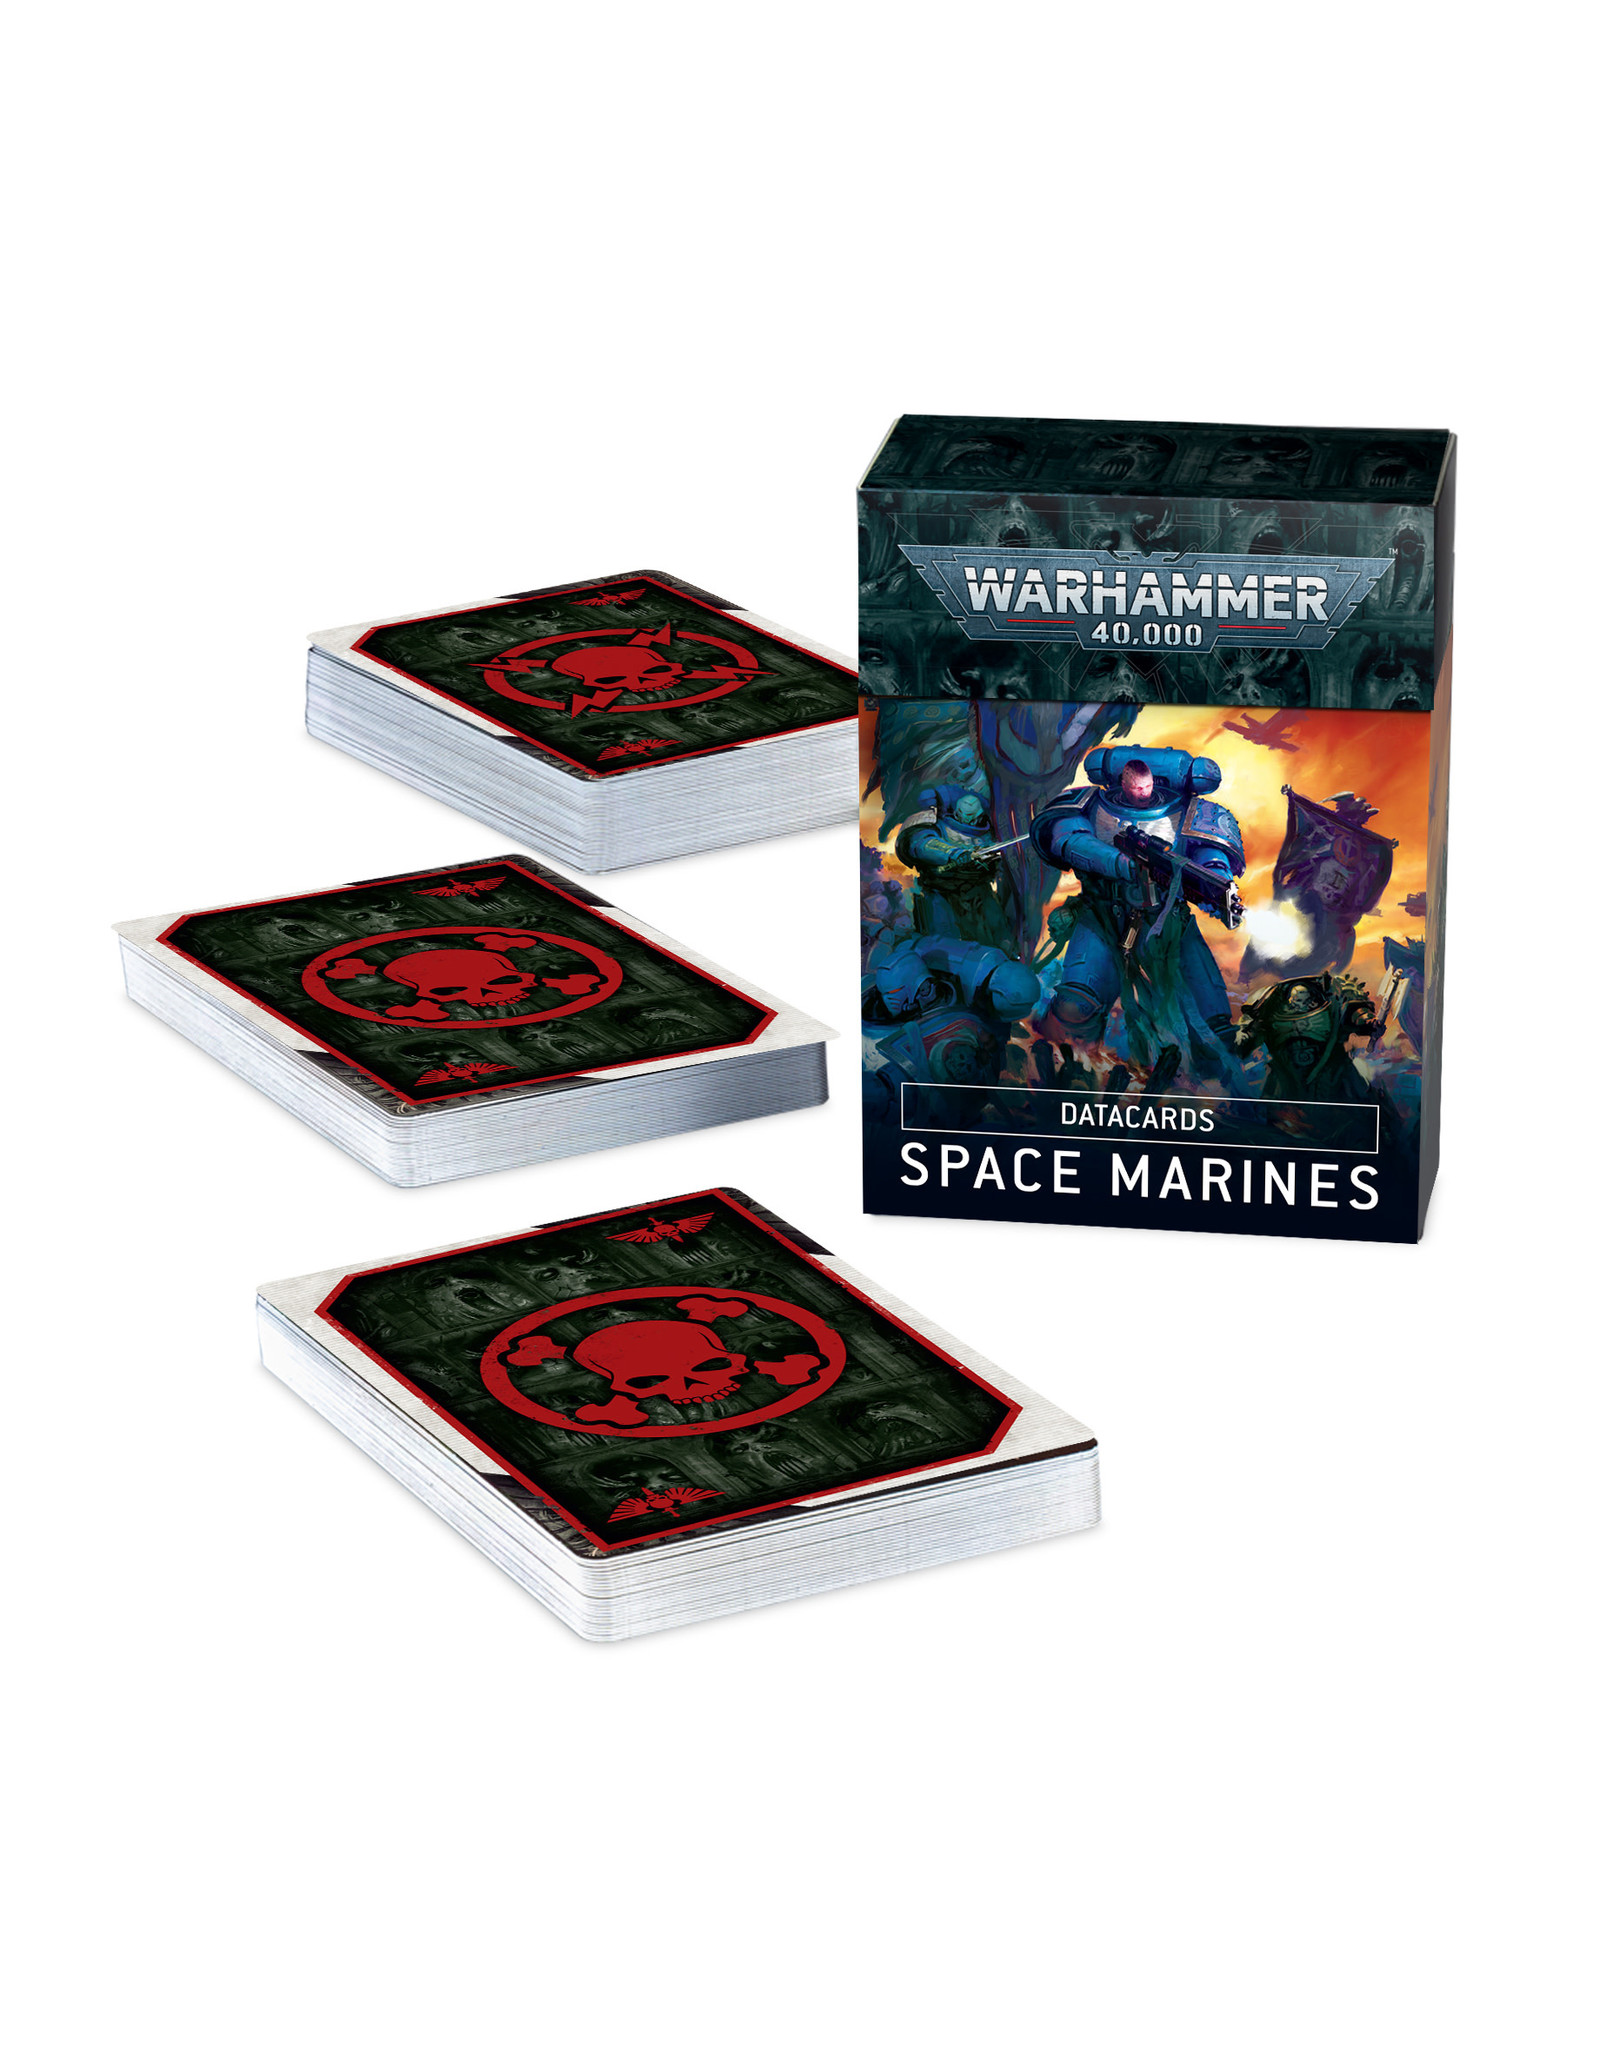 Warhammer 40,000 Datacards: Space Marines